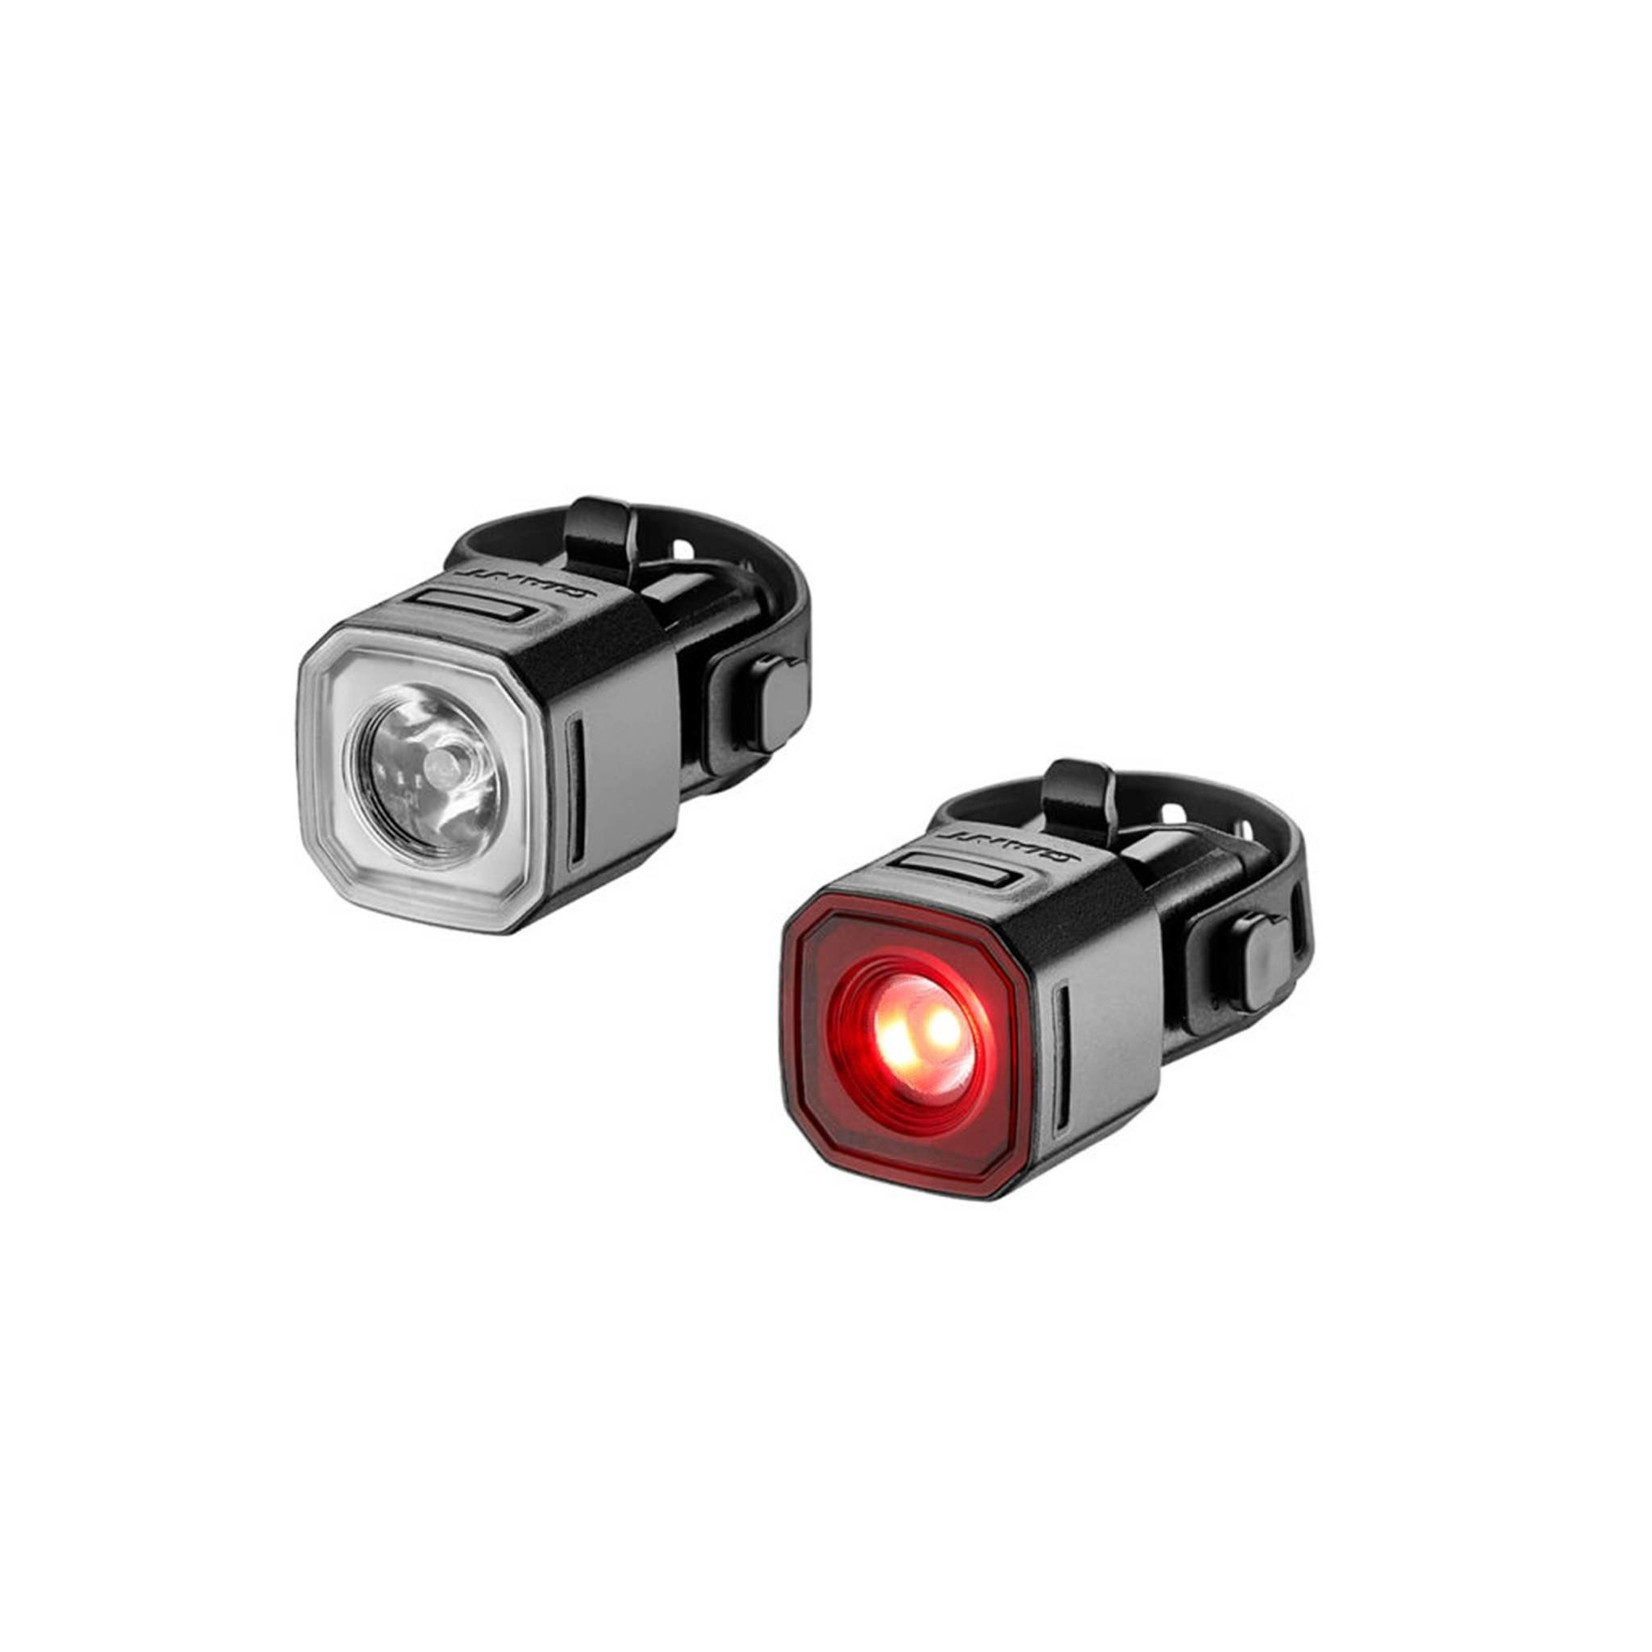 GIANT Giant Recon Front 100 & Recon Rear 100 Combo Lights